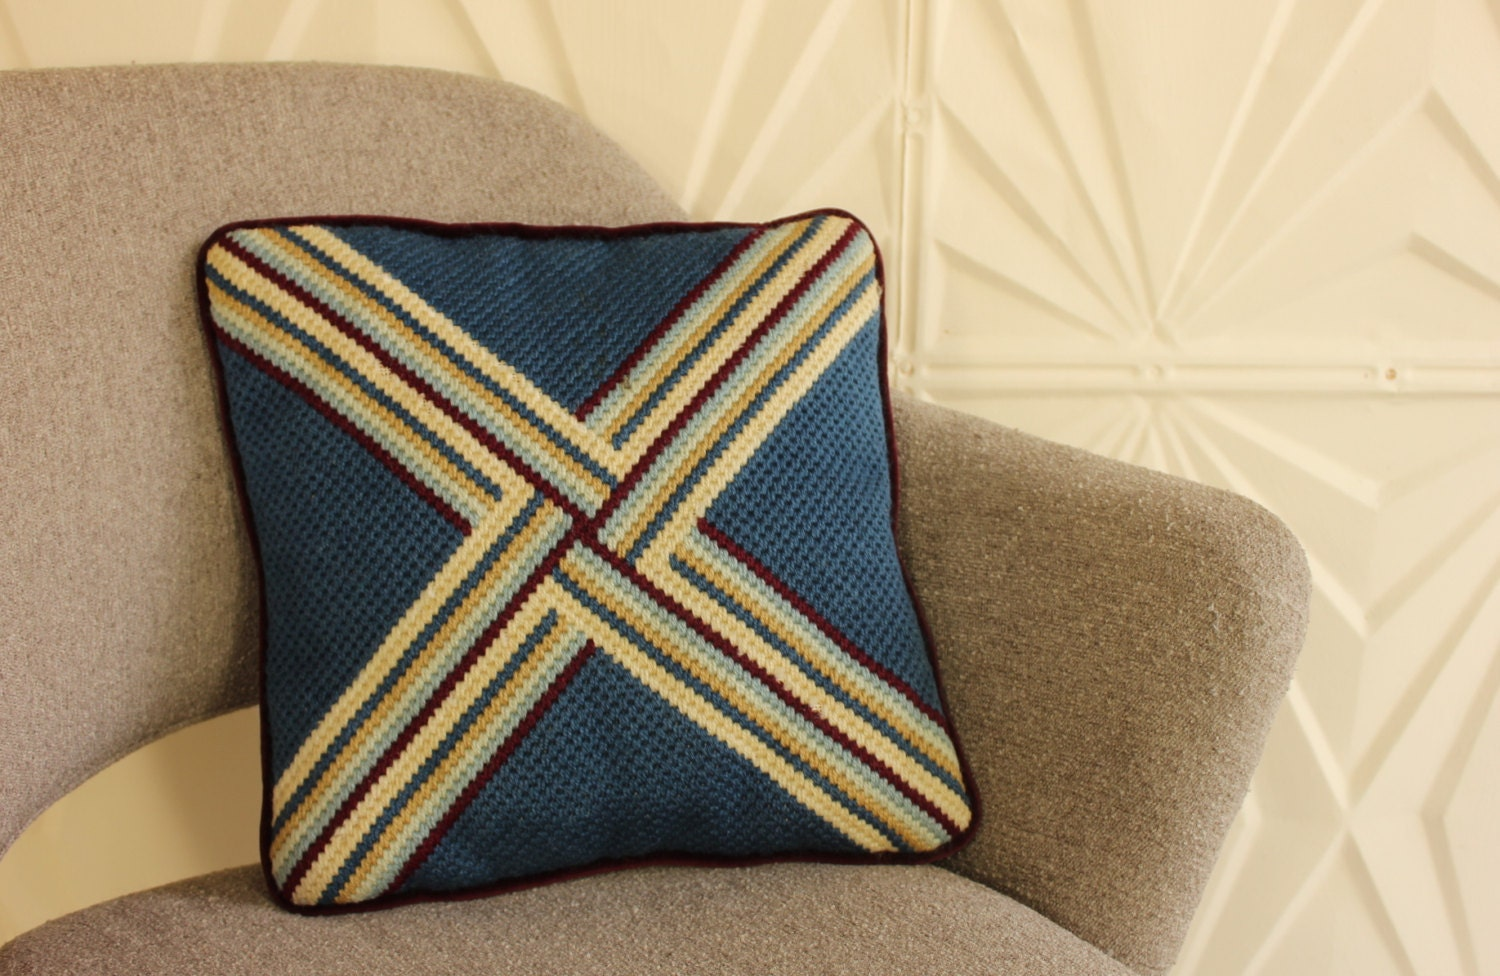 RETRO NEEDLEPOINT PILLOW Decorative Throw Colorful Blue